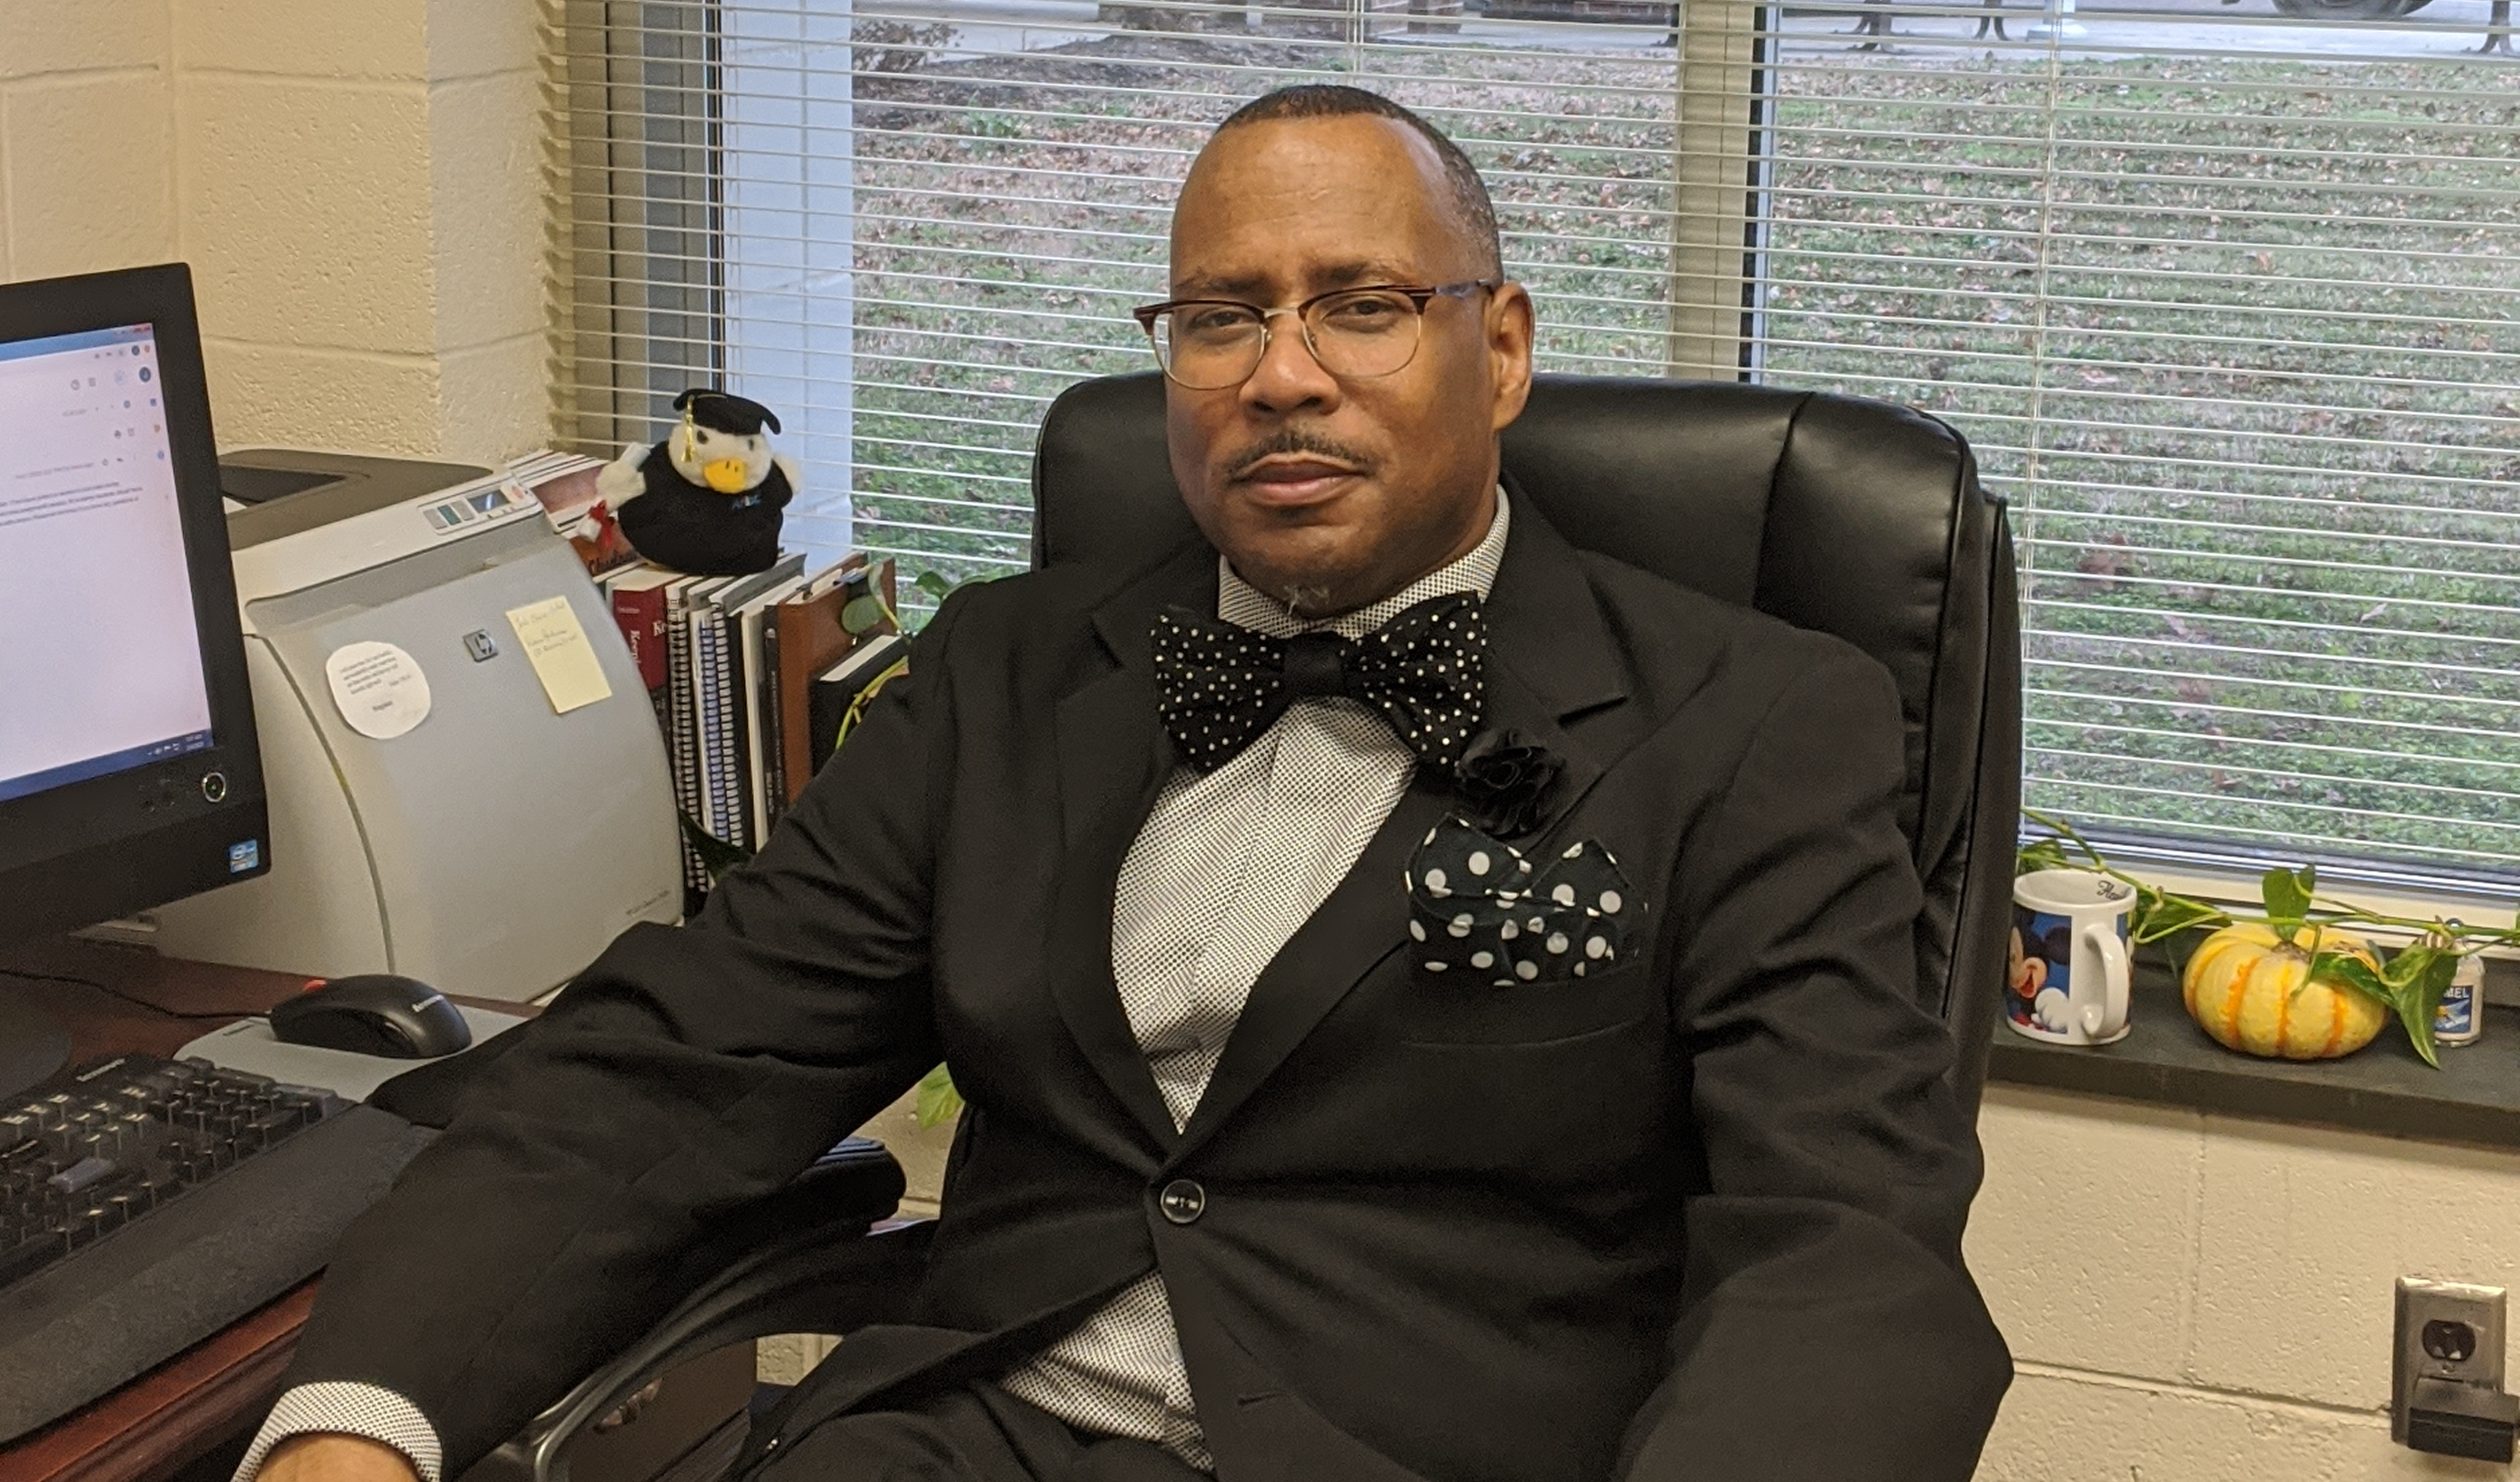 Message from the Principal:  Dear Warren New Tech High School Students and Parents,  It is my pleasure to extend a warm welcome to each of you. The 2021-2022 school year is going to be filled with exciting opportunities for students. Our goal is to create a learning environment of academic excellence that prepares each student to be college and career ready.  Warren New Tech High School aims to be student-centered and facilitates rigorous learning opportunities for all students. Our faculty and staff will work together with students, parents, and all Stakeholders in order to achieve academic success.  Our level of success is determined by our commitment and partnerships: administrators, parents and guardians, teachers, community leaders, and students working together as a team. Our top priorities are safety and academic success for all students. We are committed to keeping you informed but ask that you please keep the school updated with your current address and contact information in order to stay connected. We know that your student's high school experience will be filled with both successes and challenges. Warren New Tech High School is dedicated to our students throughout this process, so please do not hesitate to reach out to us at any time.  As Principal of Warren New Tech High School, I will strive to ensure that we achieve our goal of providing a rigorous education for all students in order to become productive and global citizens after high school.  Thank you for entrusting your students to us. We are looking forward to a wonderful school year together.   Again, Welcome!  Educationally yours, Principal John O. Green